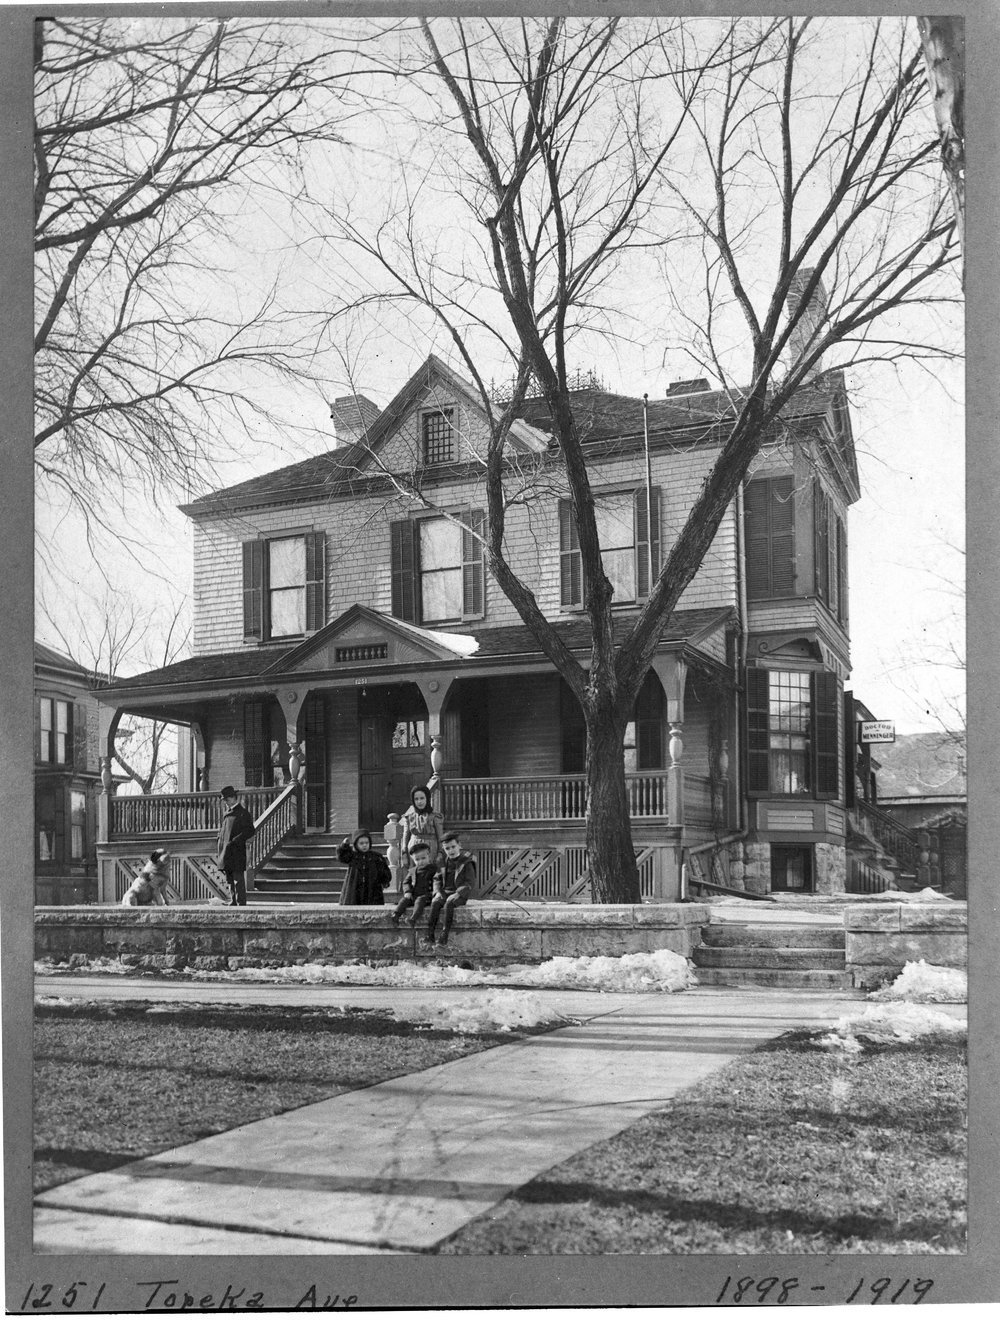 Charles F. Menninger homes in Topeka, Kansas - This is the C. F. Menninger family home  at 1251 Topeka Avenue in 1901.  Karl, Edwin and Will are seated on the wall.  William R. Kircher is standing on the left.  The St. Bernard dog is Guard.